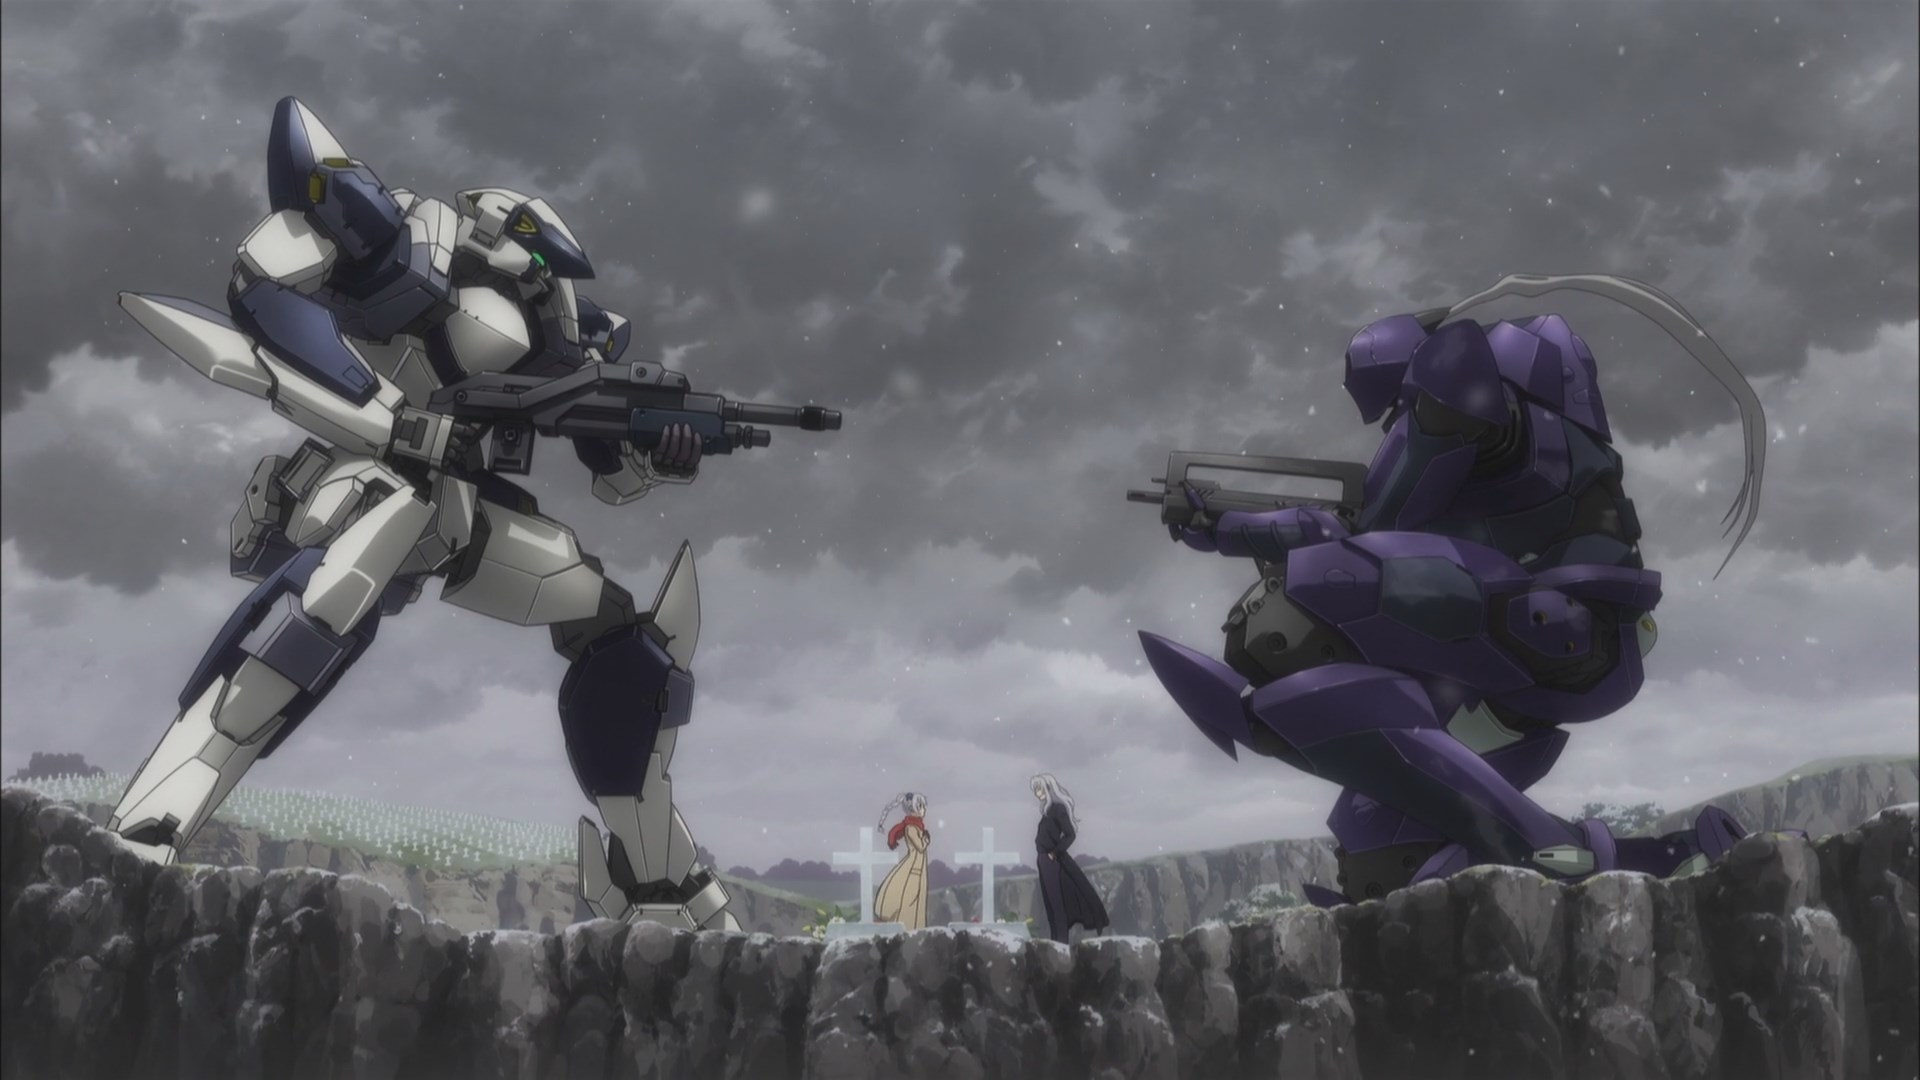 Full Metal Panic! Invisible Victory 01